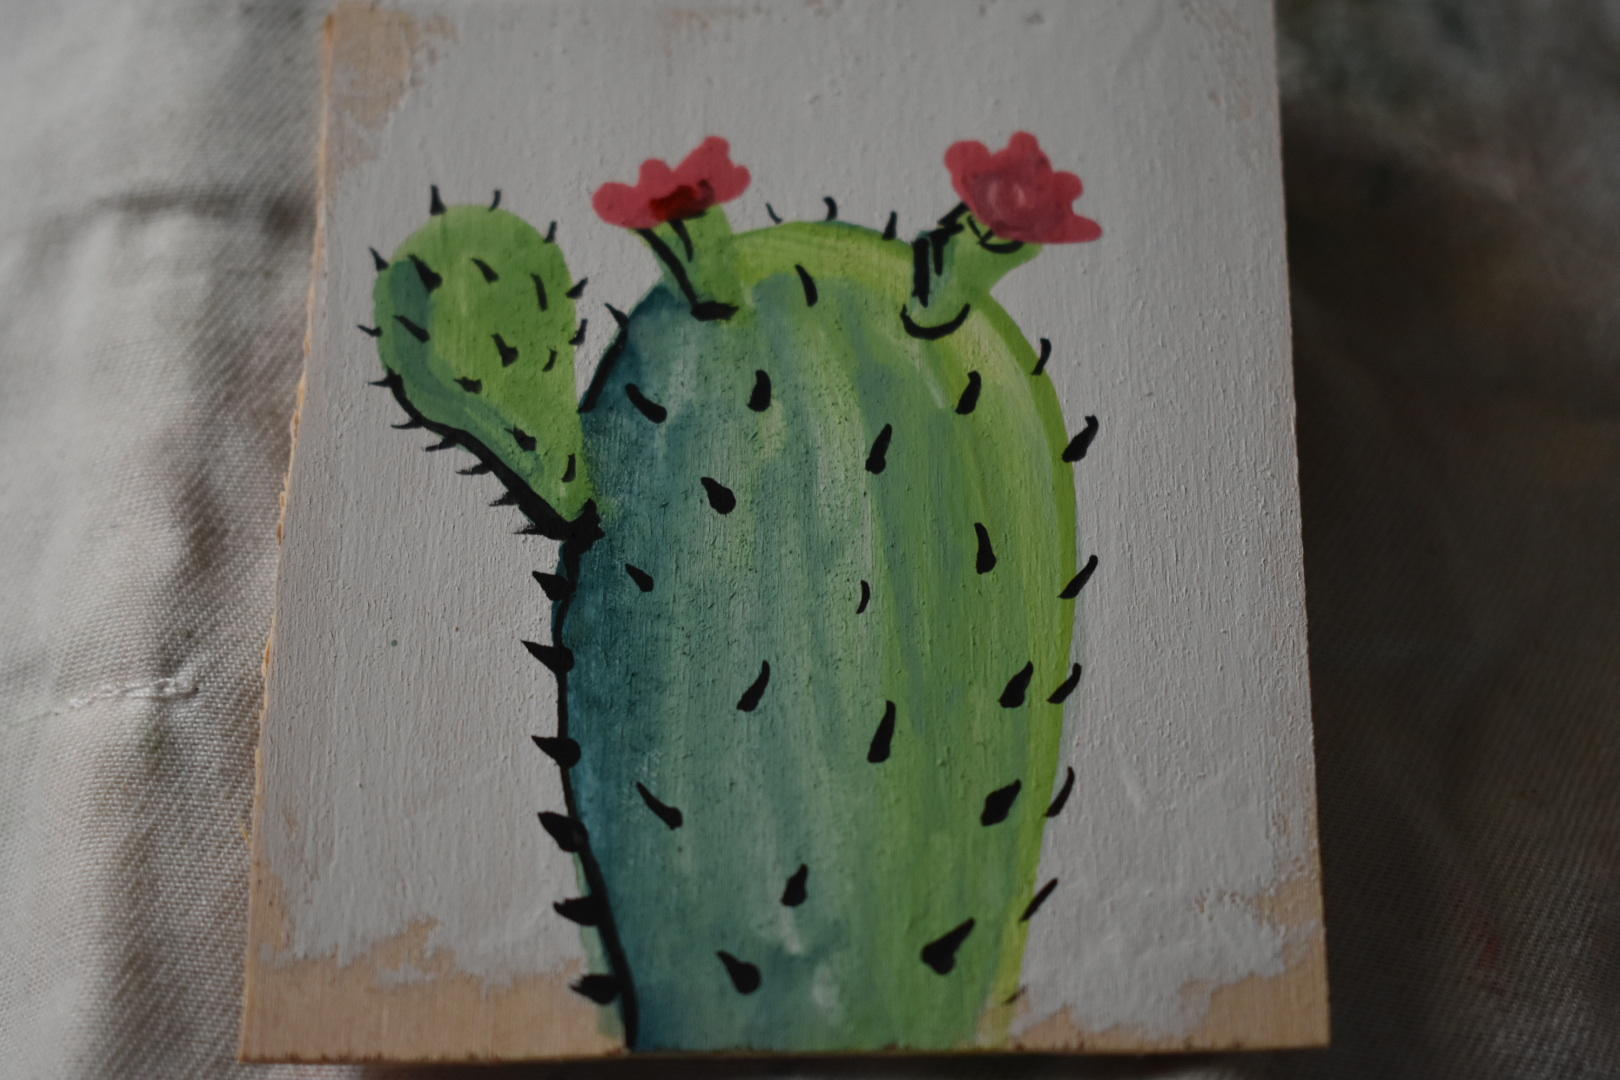 """2016 Goache on wood. Size is about 2""""x3"""". Painted to be sold at an outdoor market."""